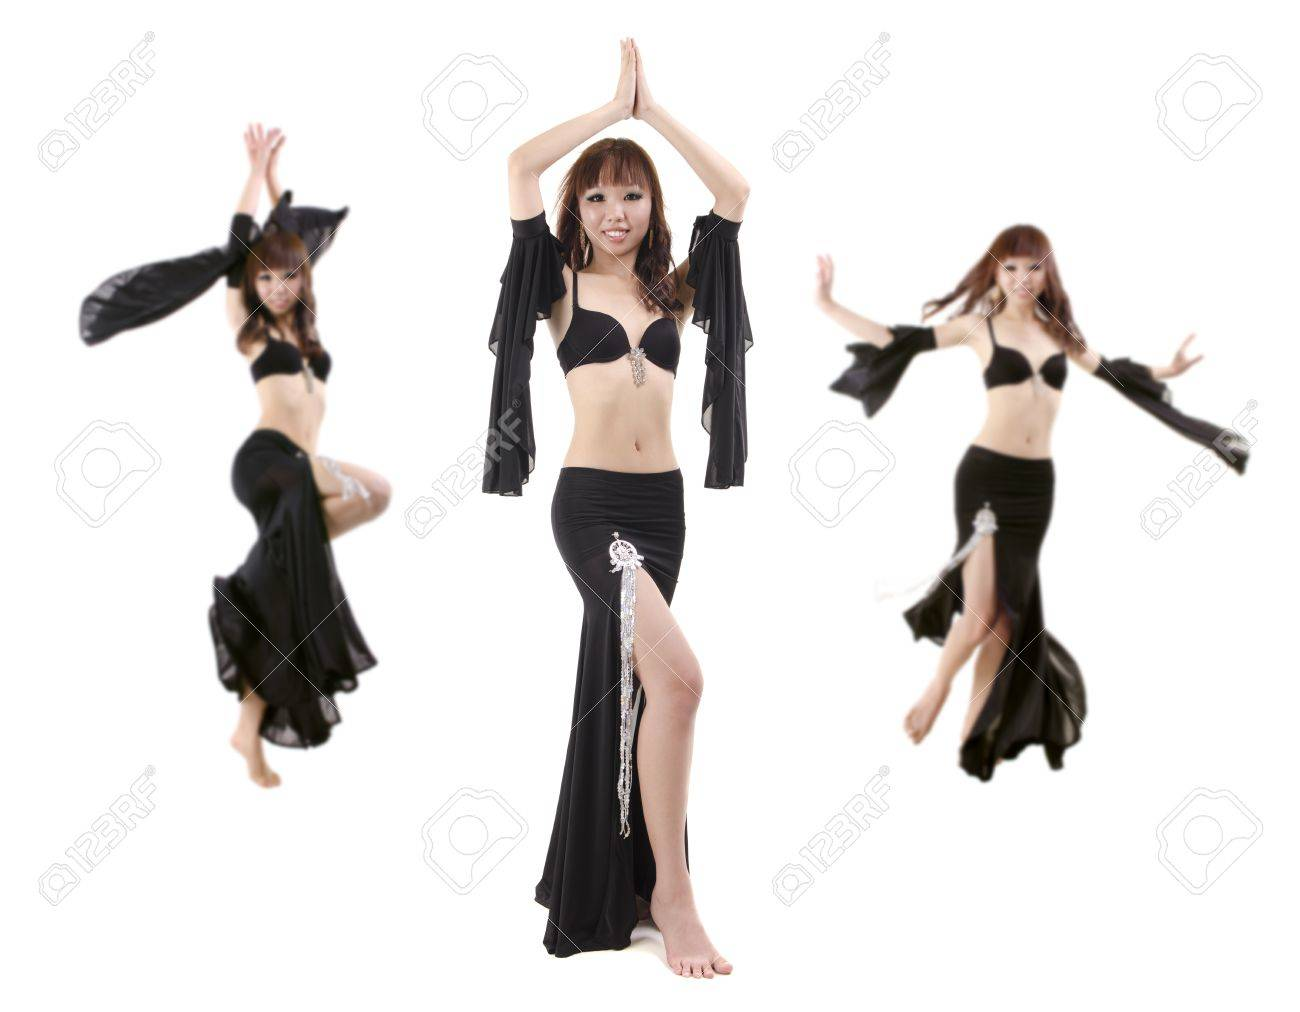 Belly dancing performance on white background Stock Photo - 12666377